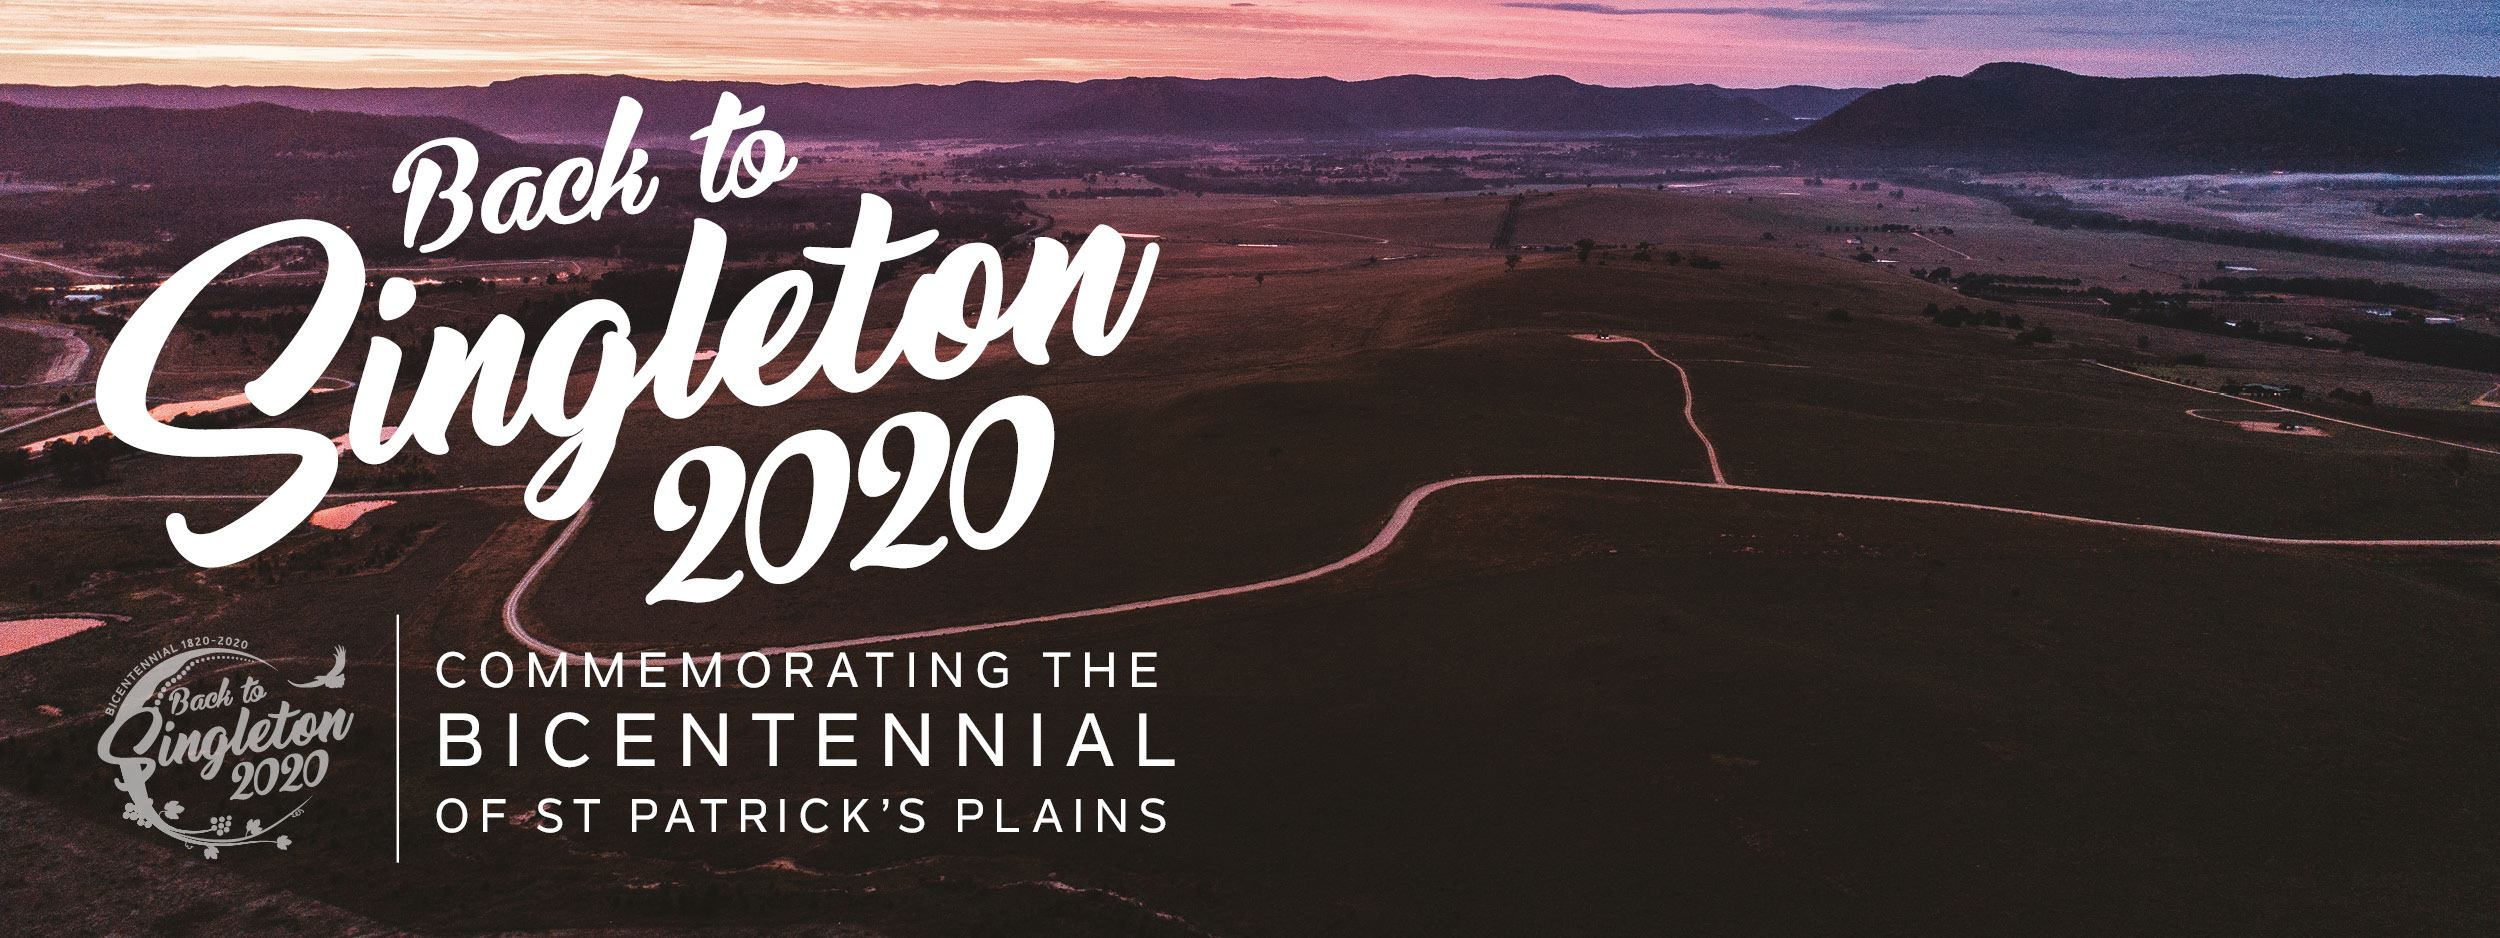 Back to Singleton 2020